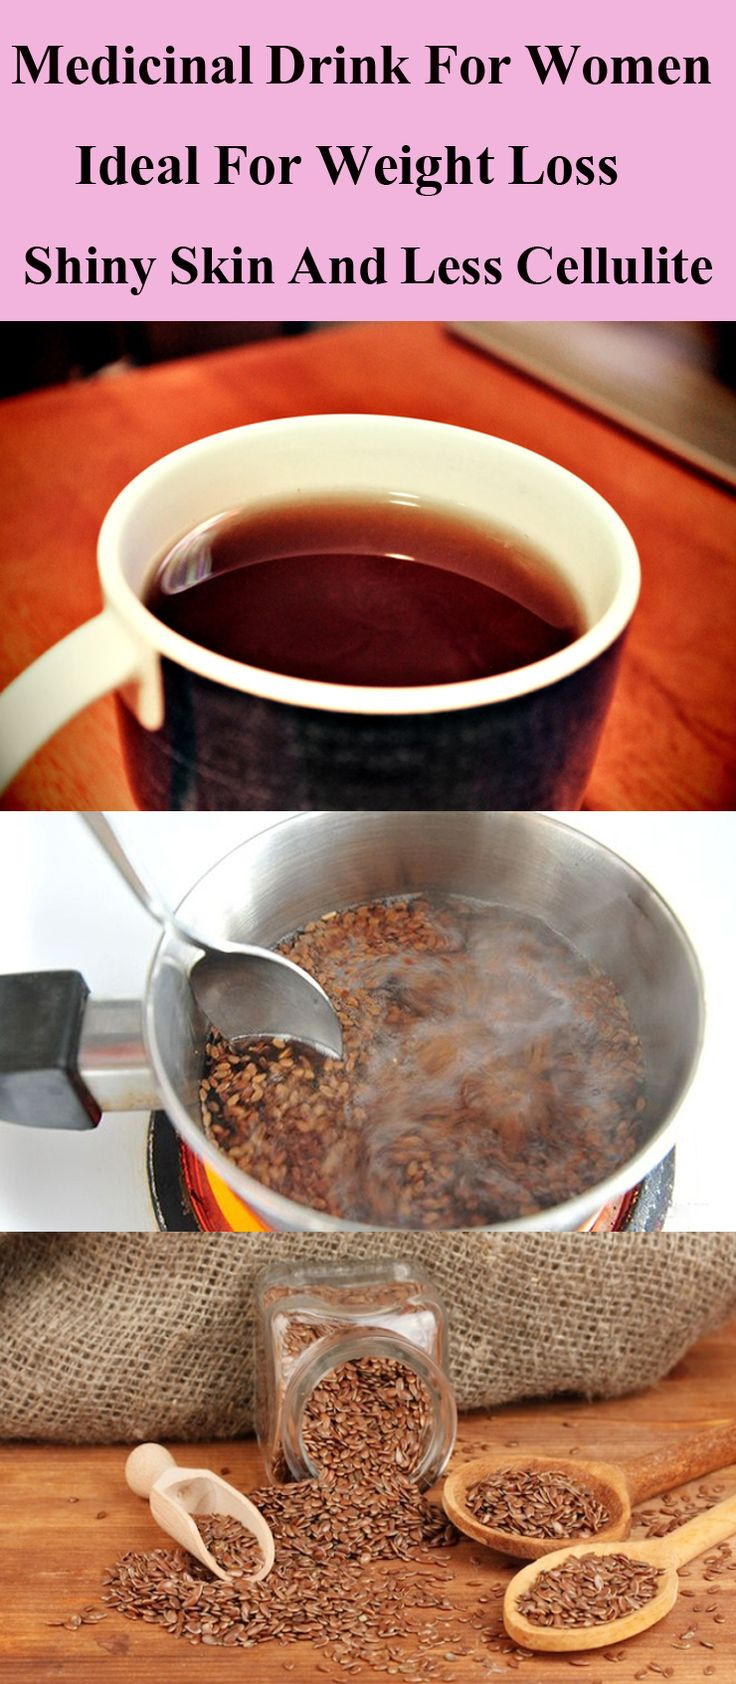 Medicinal Drink For Women – Ideal For Weight Loss, Shiny Skin And